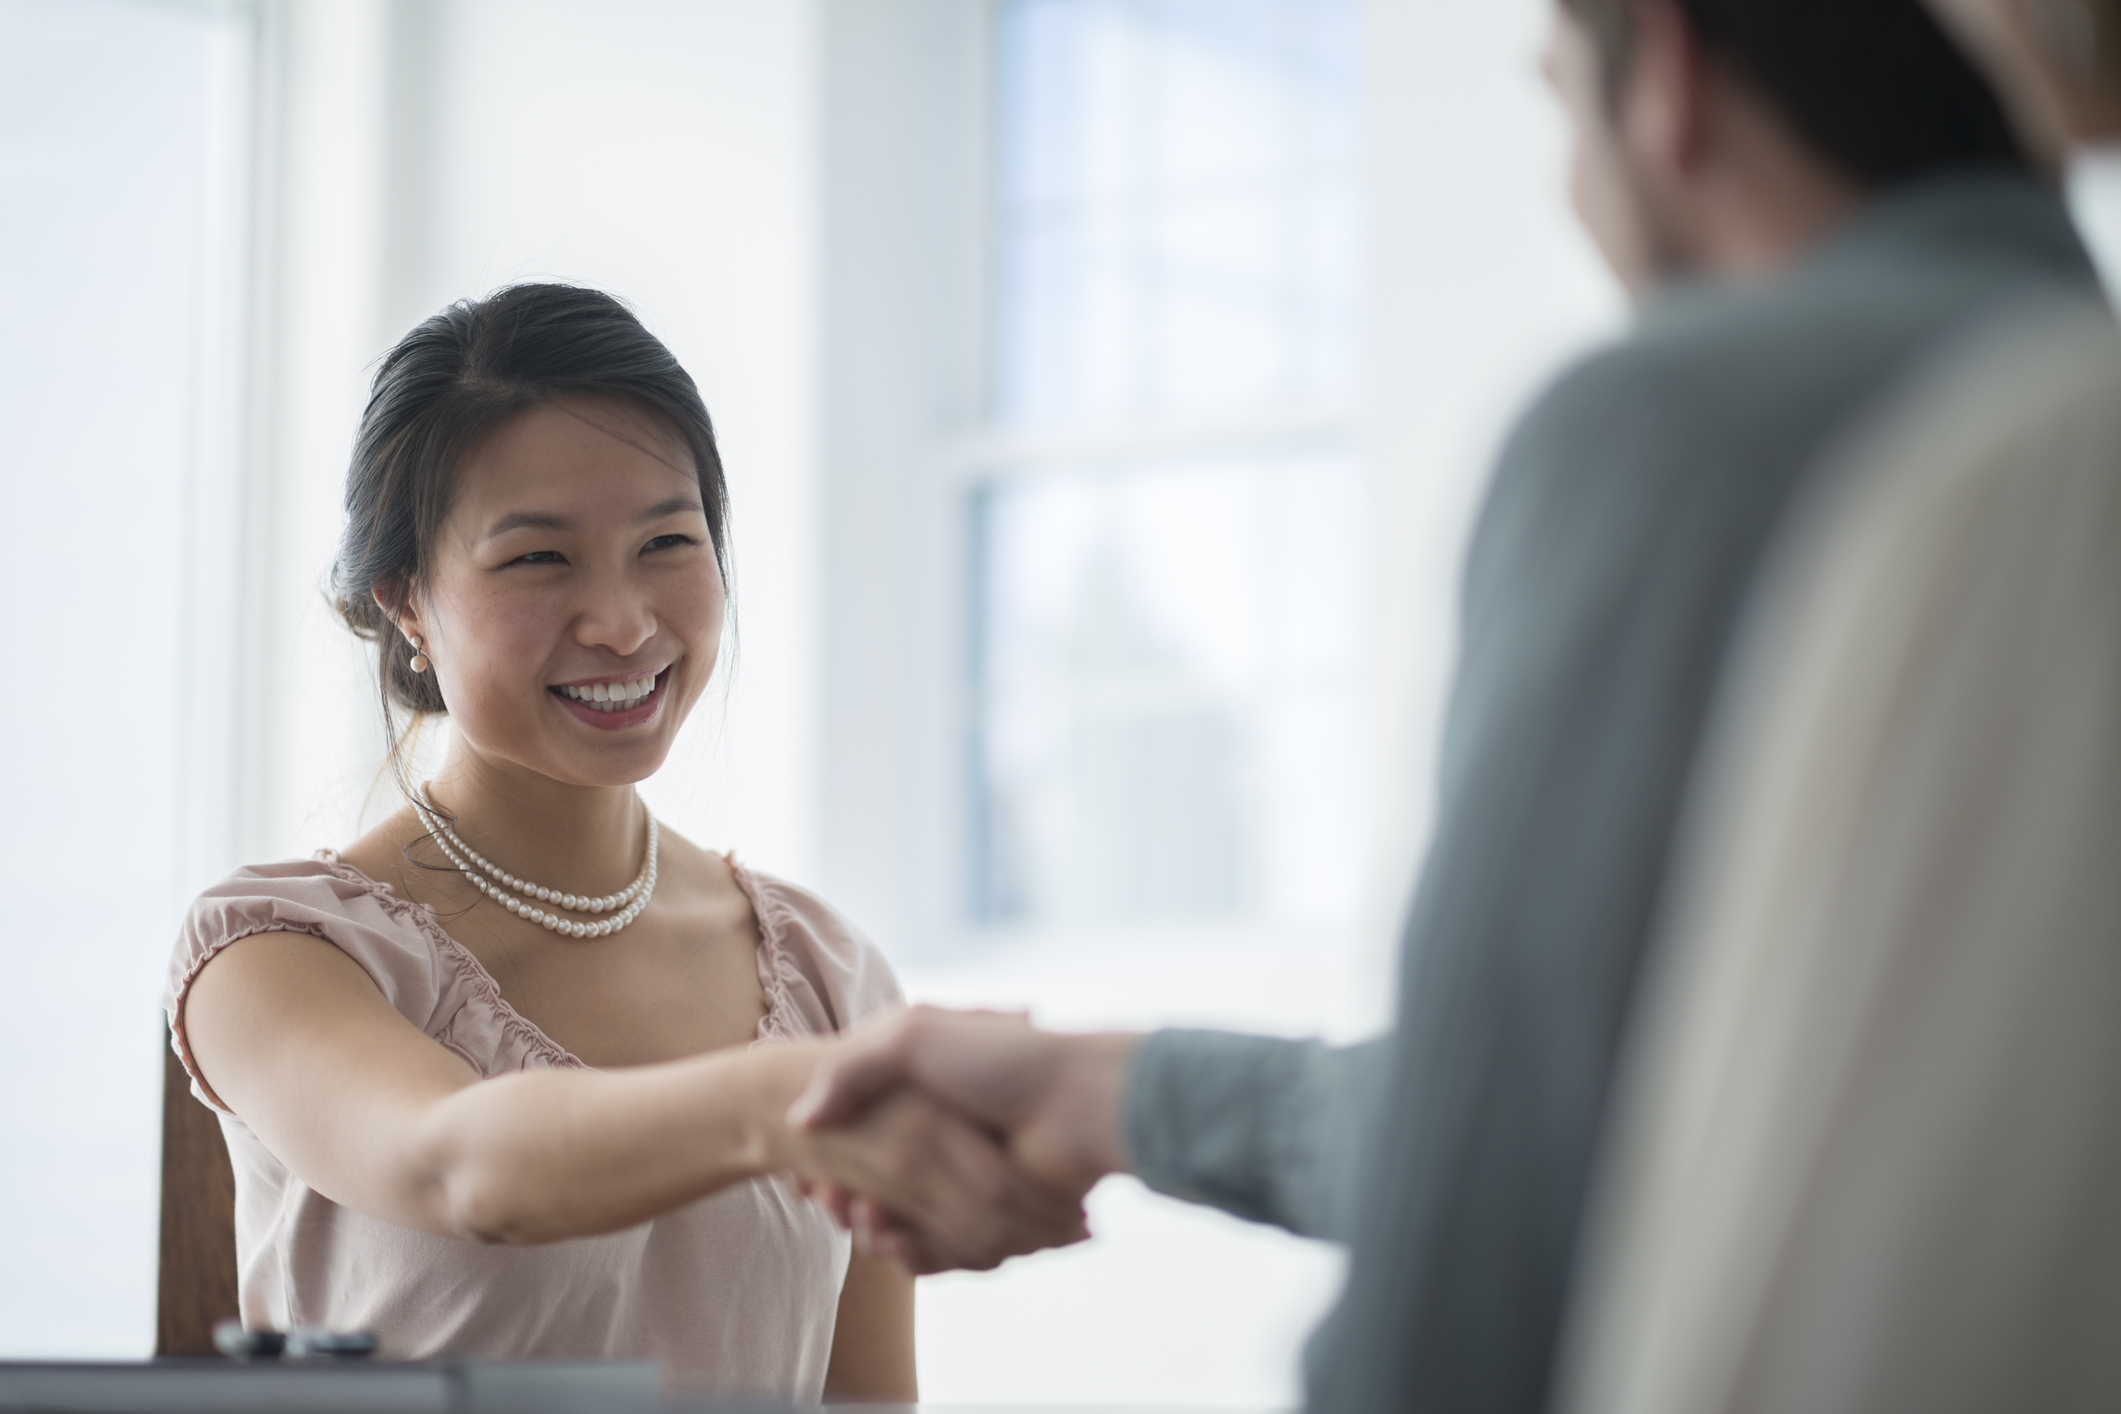 The 8 Best Questions To Ask A Job Interviewer Careers